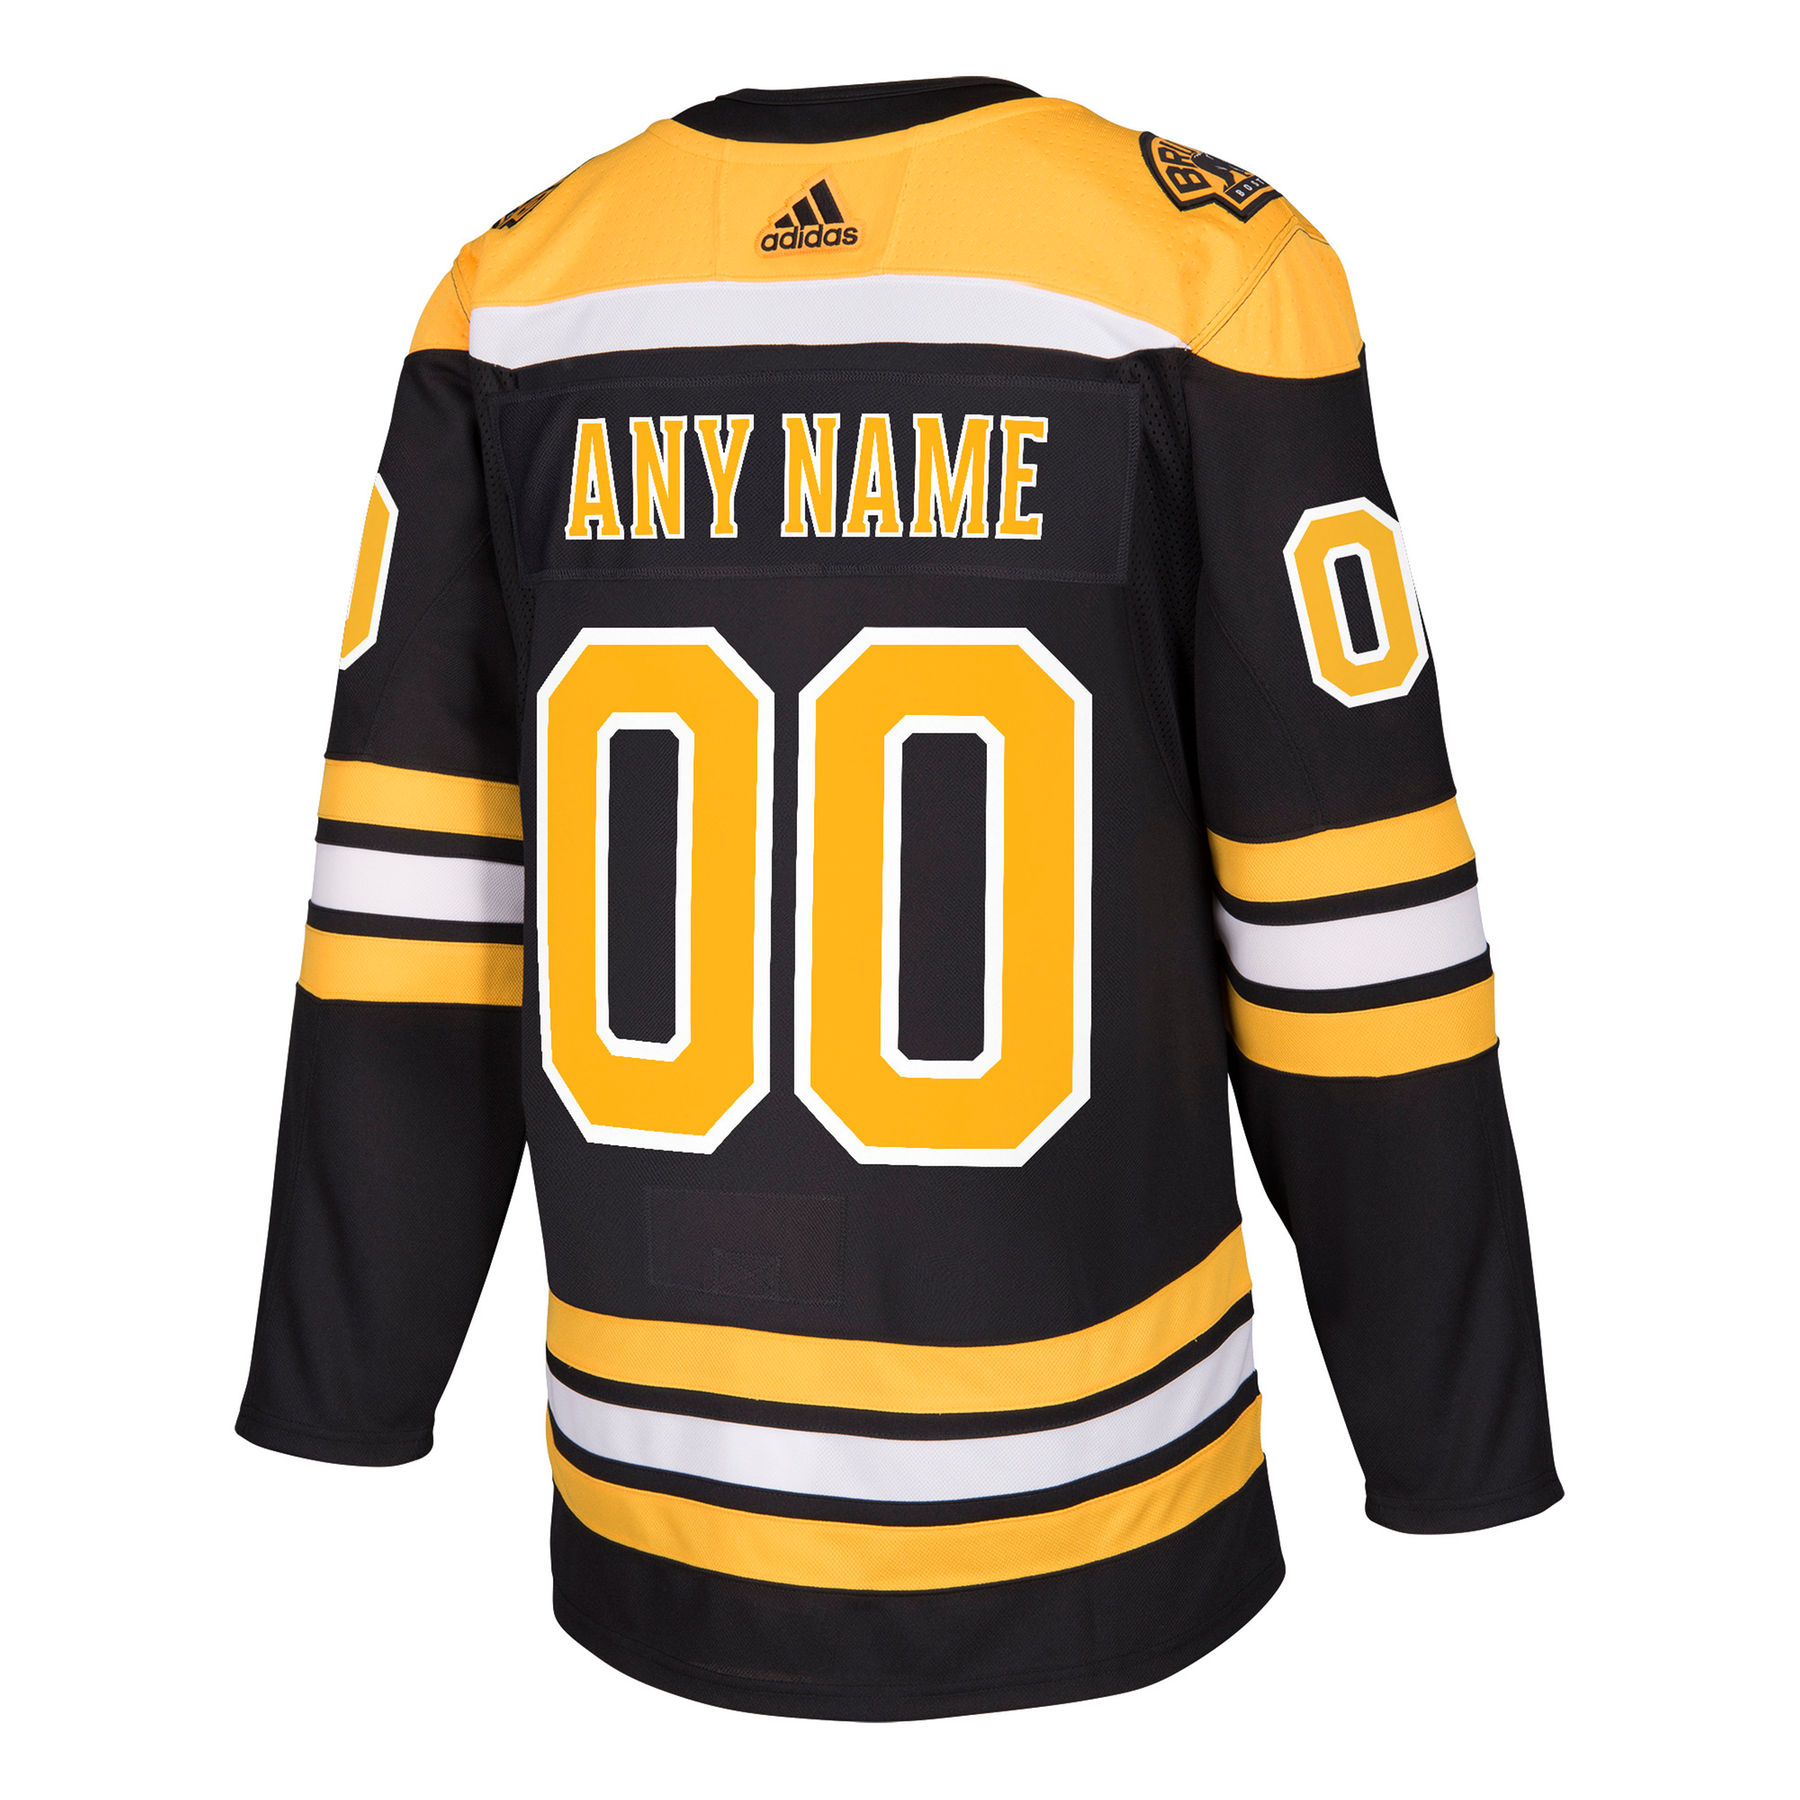 Boston Bruins ANY NAME Adidas NHL Authentic Pro Home